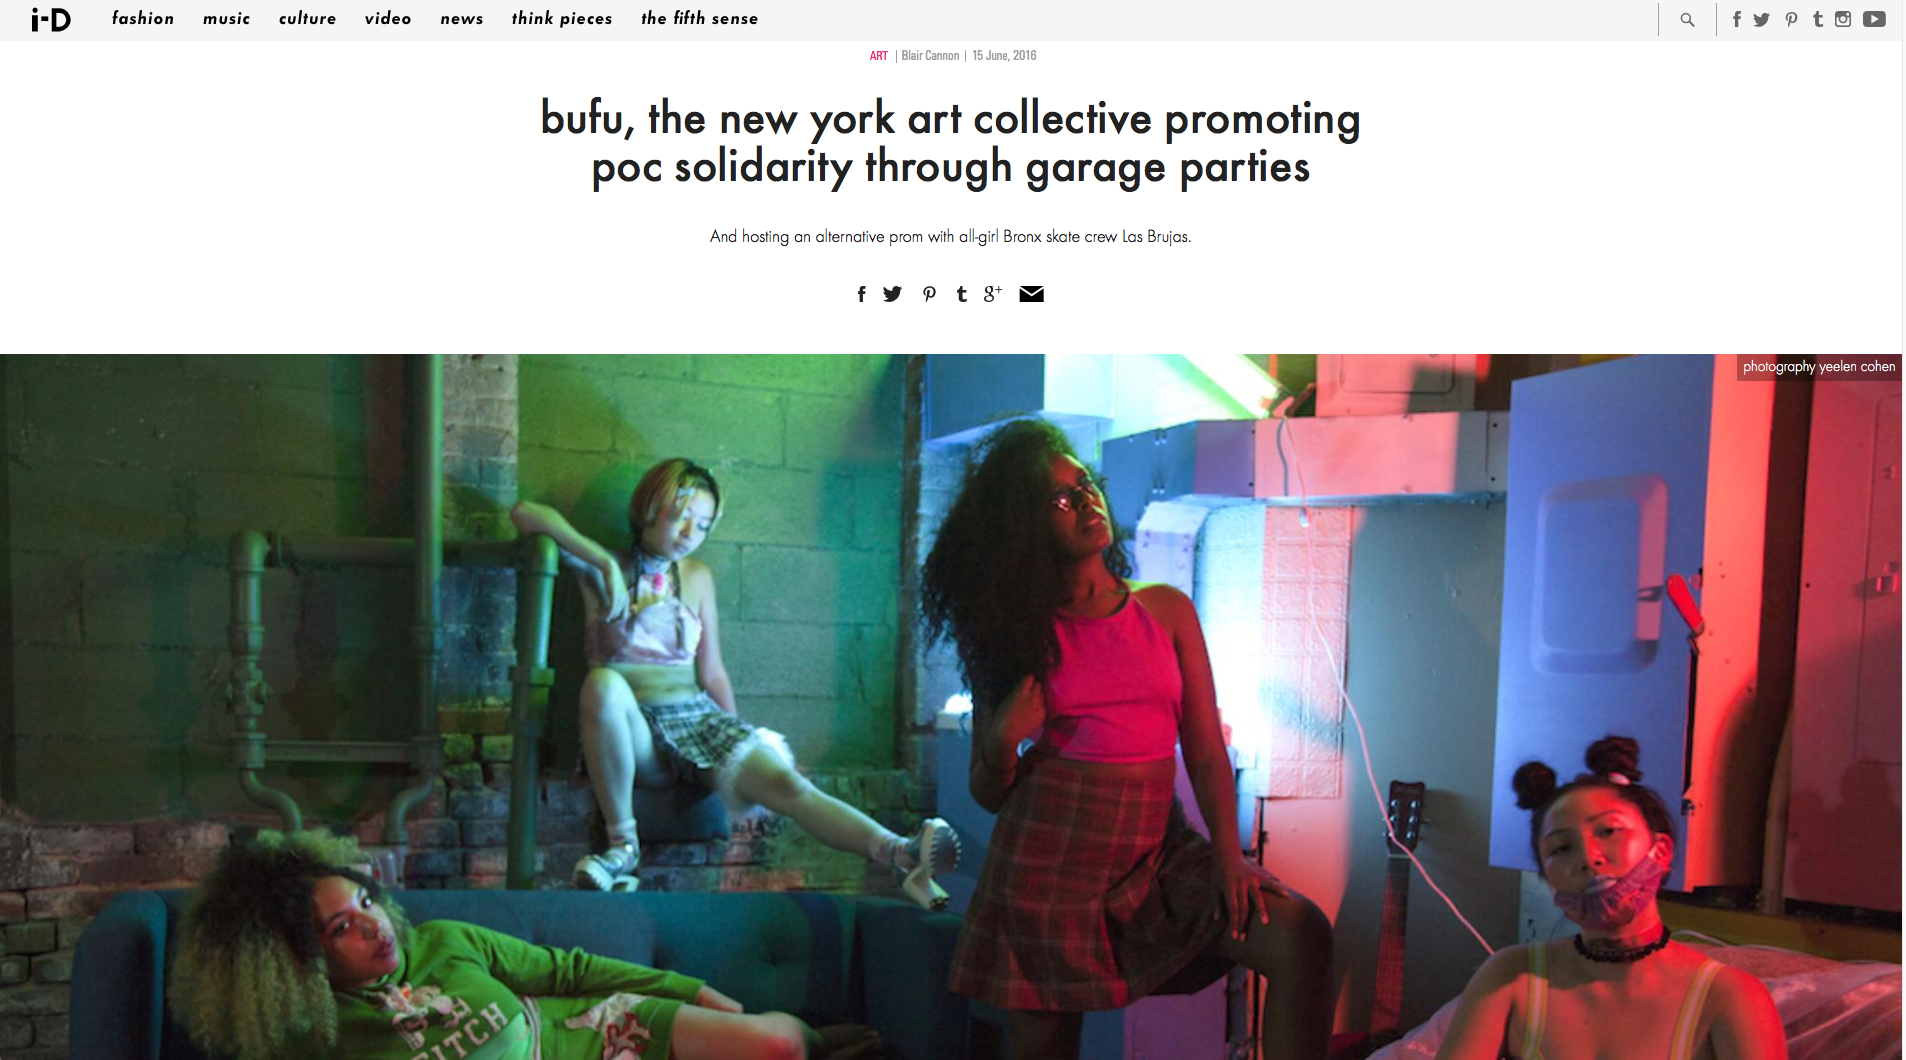 """BUFU, the New York Art Collective Promoting POC Solidarity through garage parties"" by Blair Cannon on i-D Magazine"